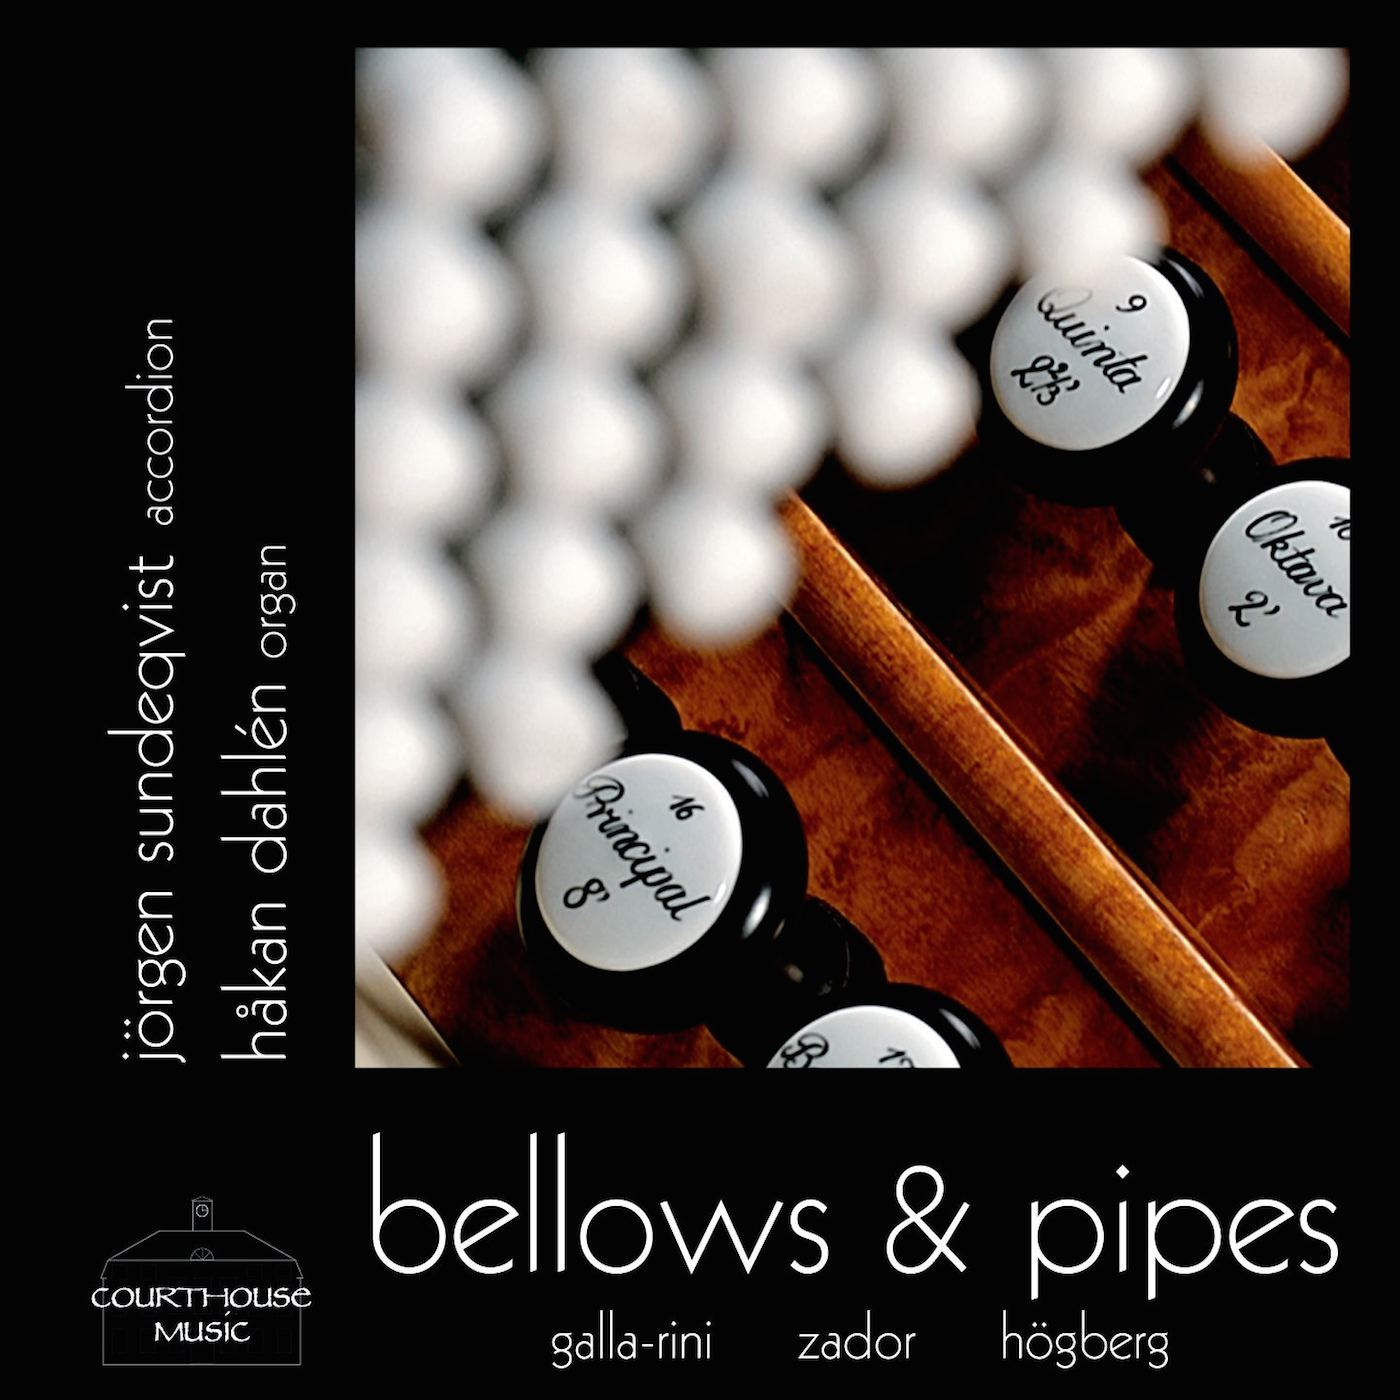 Bellows & Pipes